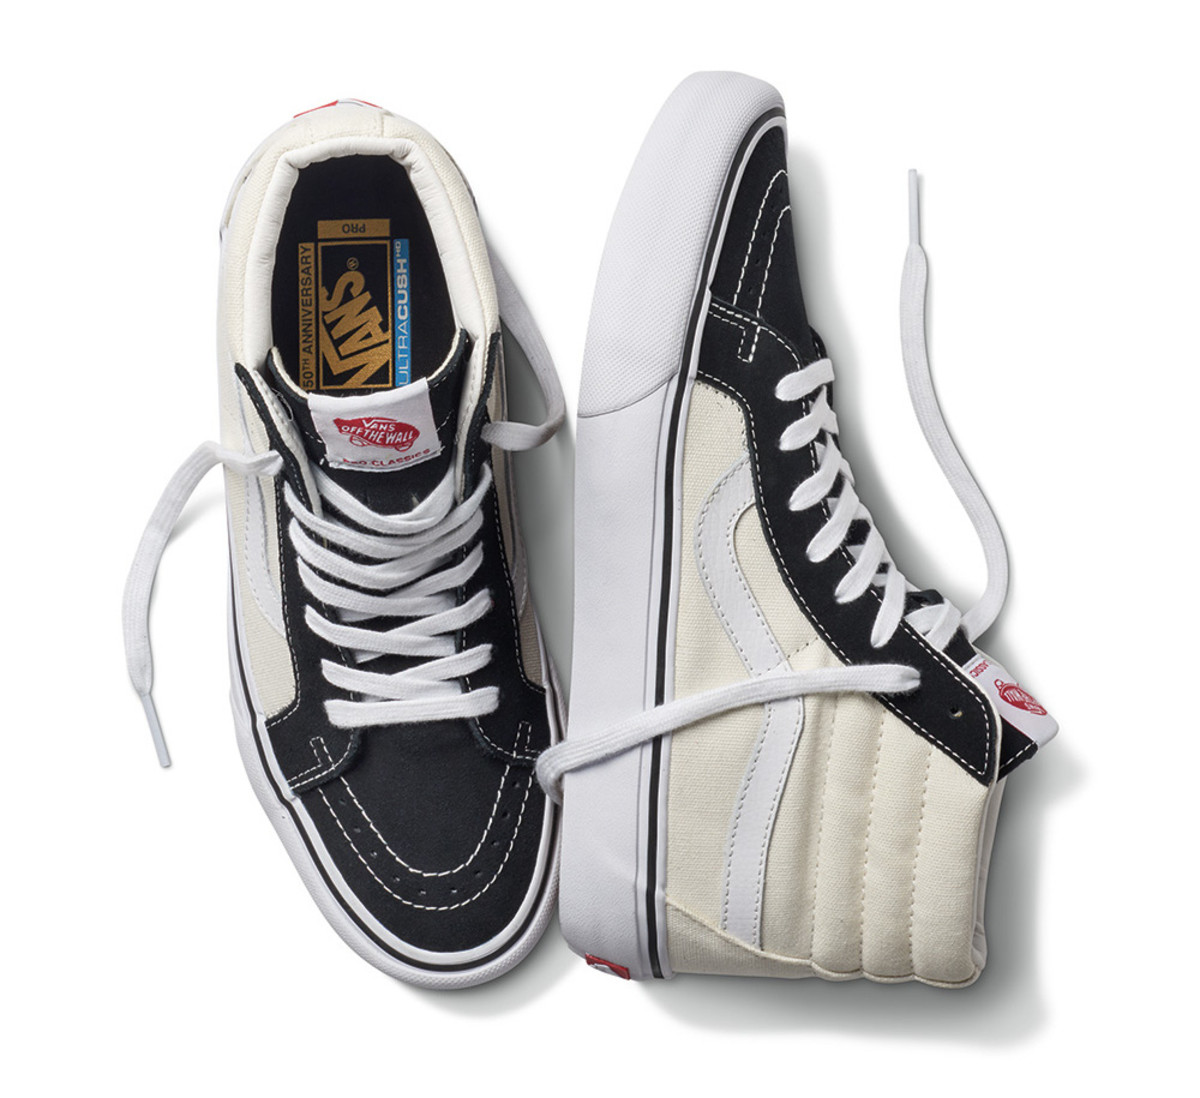 vans-pro-classics-anniversary-collection-03.jpg